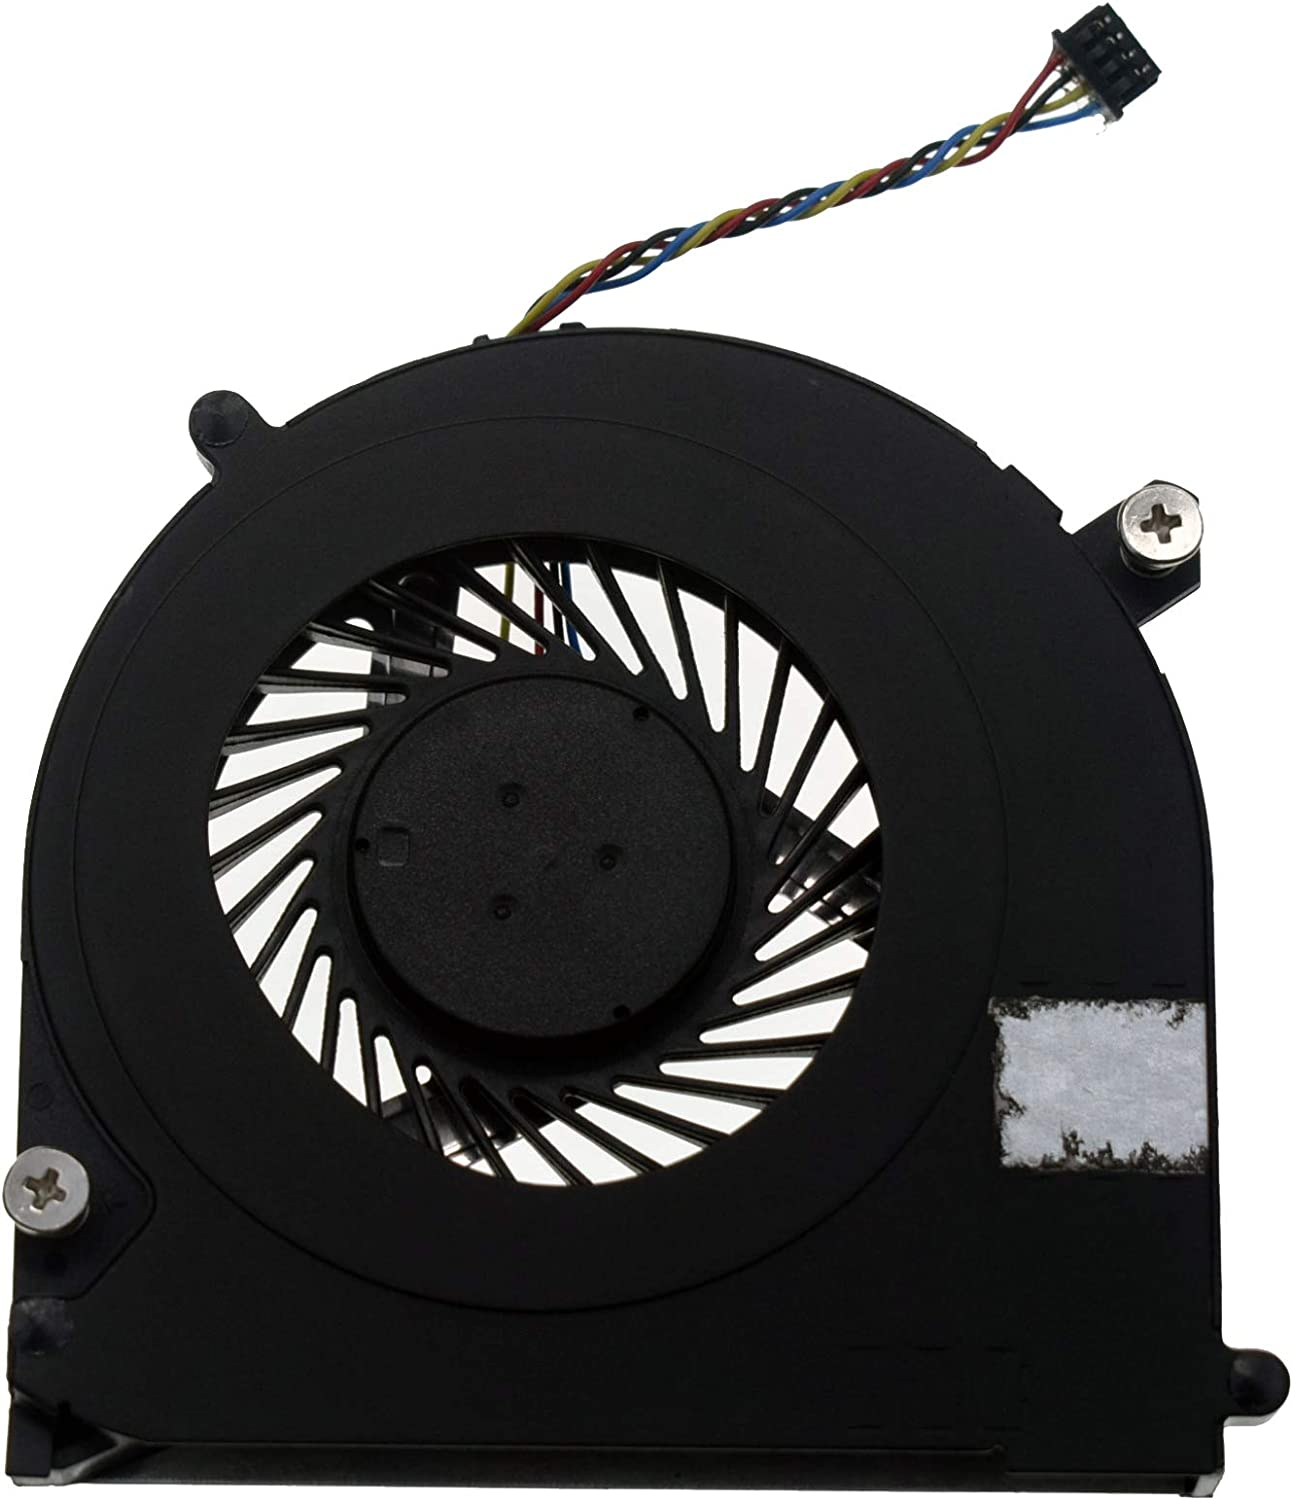 DREZUR CPU Cooling Fan Compatible for HP Elitebook 840 850 G1 G2 ZenBook 14 740 745 750 755 G1 G2 Series Laptop 730792-001